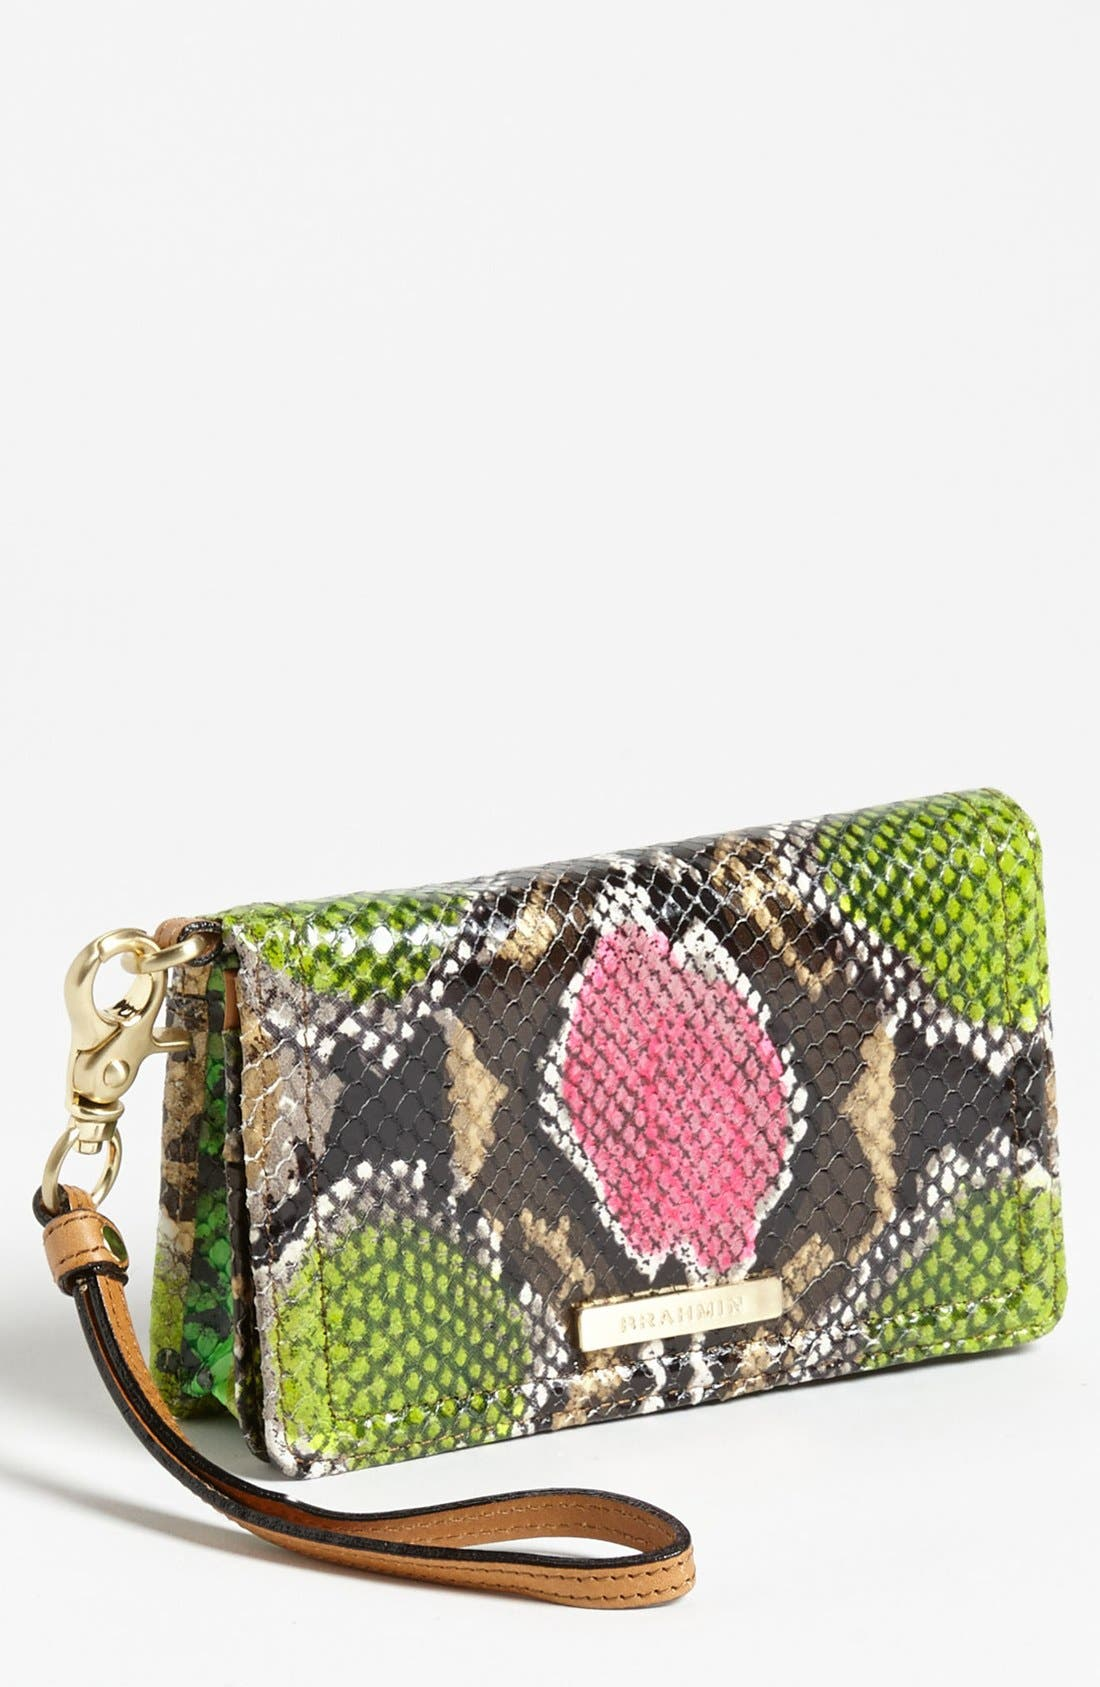 Main Image - Brahmin 'Debi' Anaconda Embossed Leather Wristlet